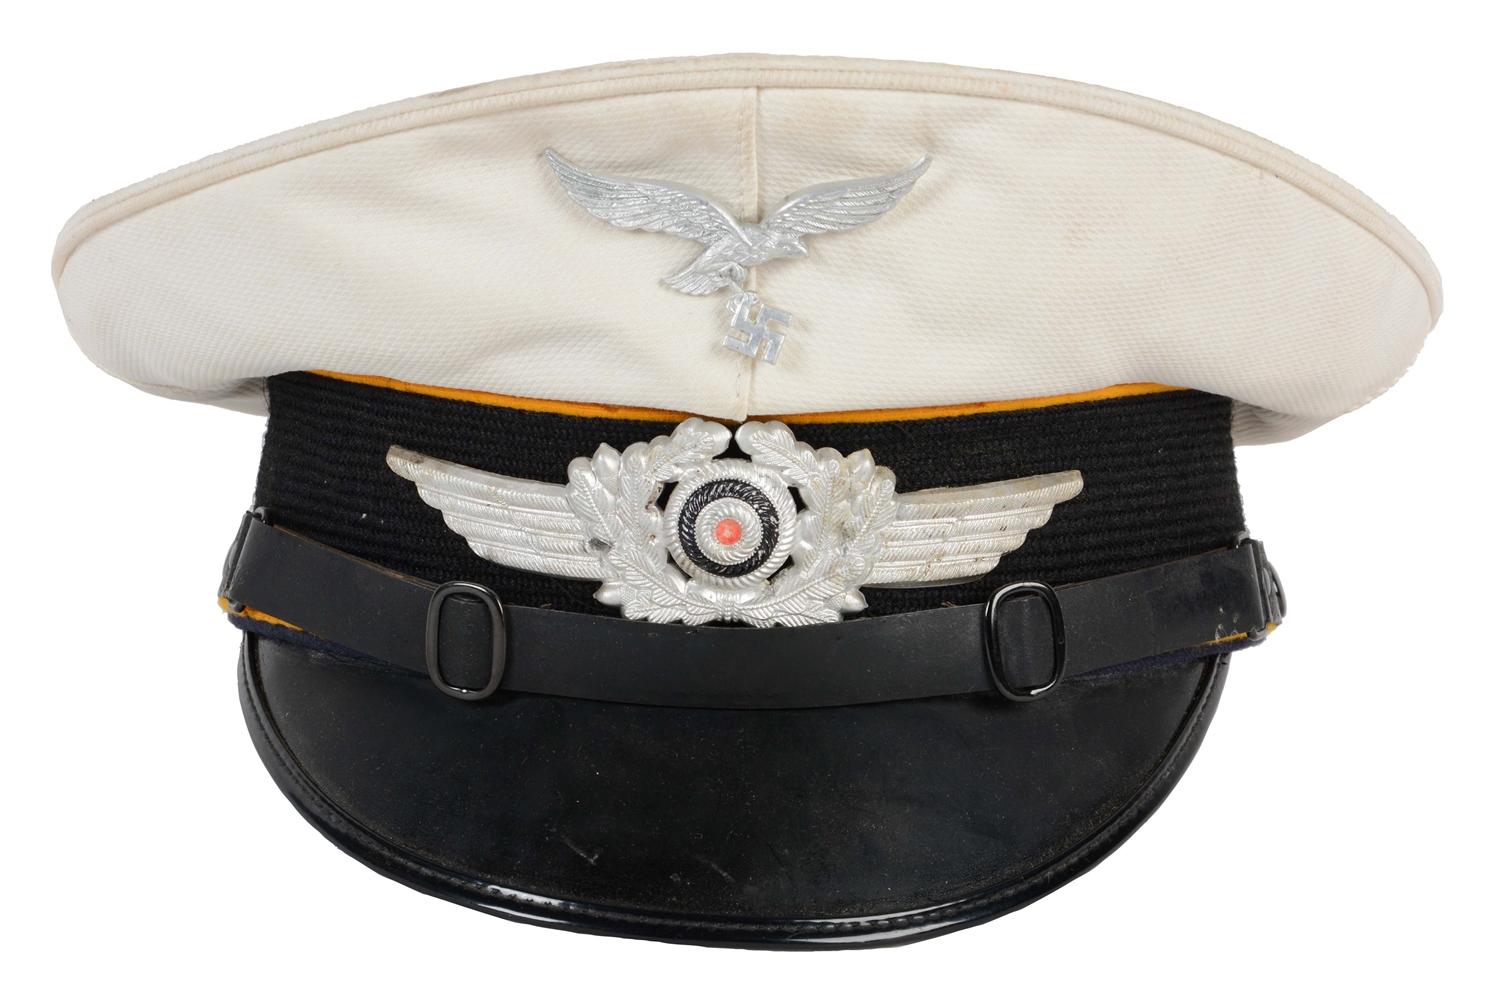 German WWII Luftwaffe Summer Visor for Flight/Paratrooper.